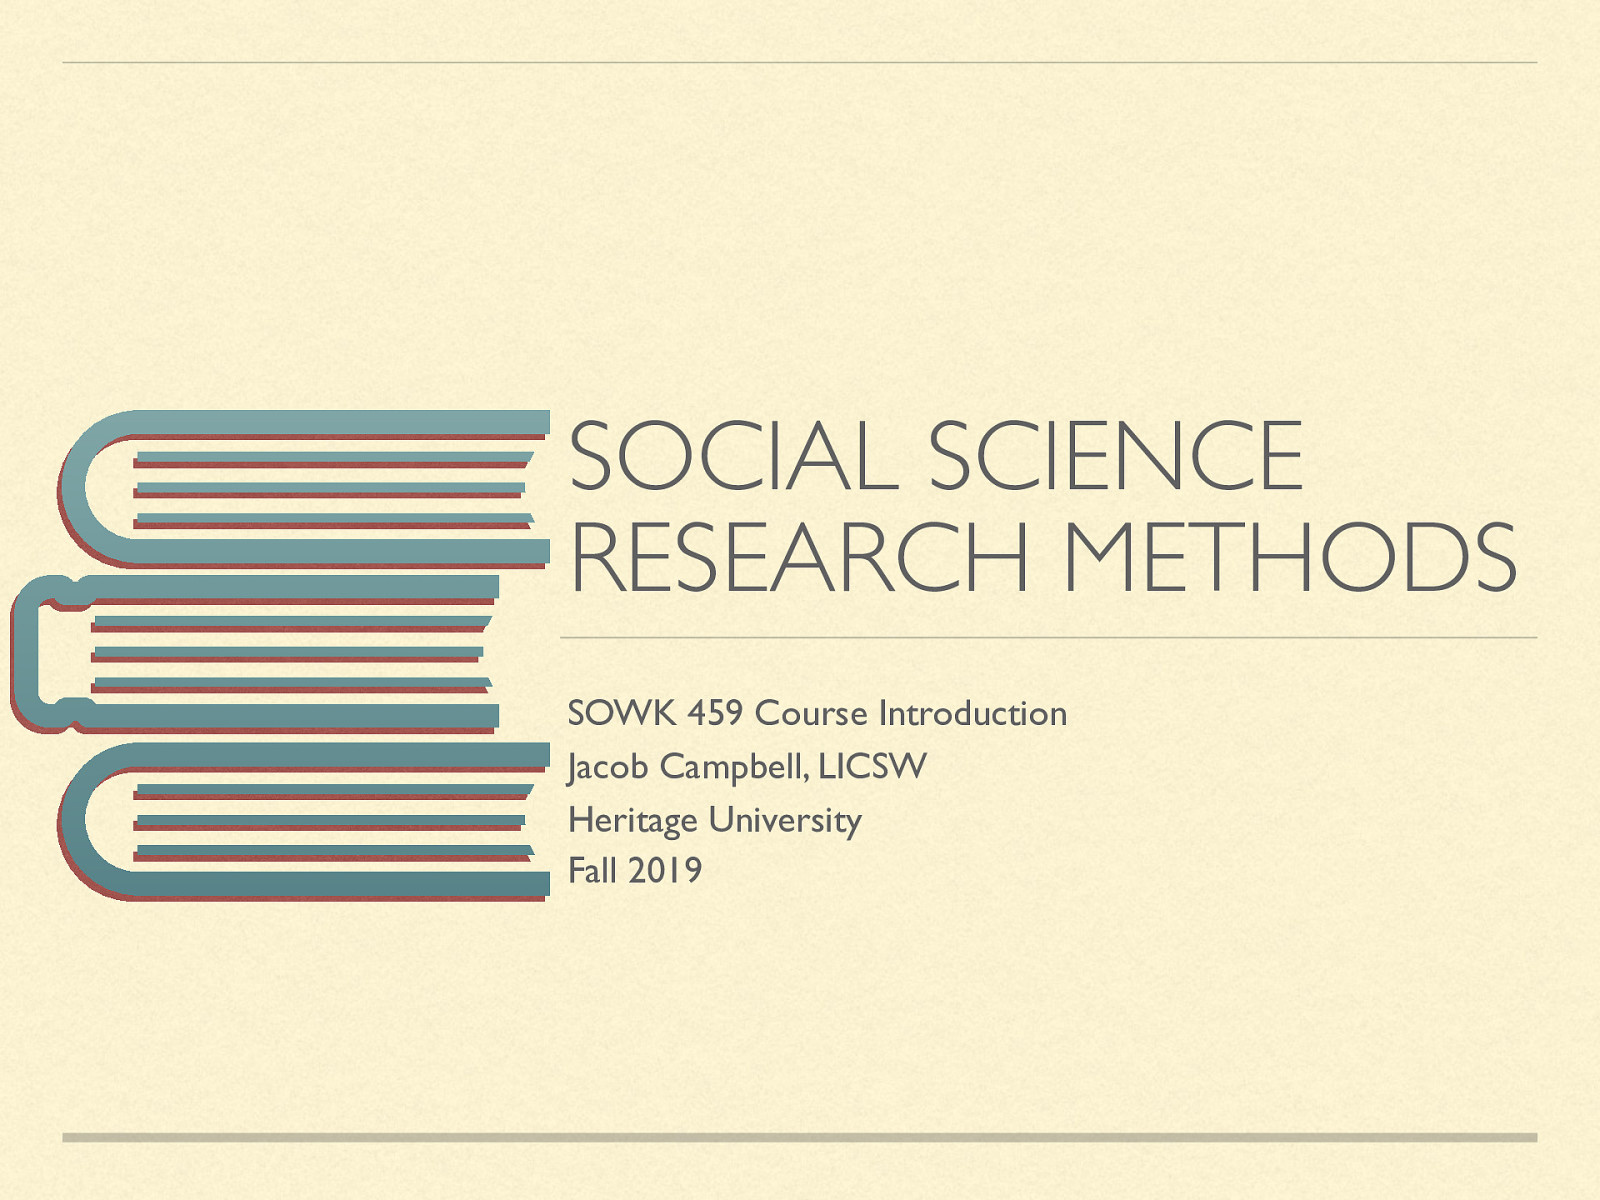 Introduction to Social Science Research Methods by Jacob Campbell